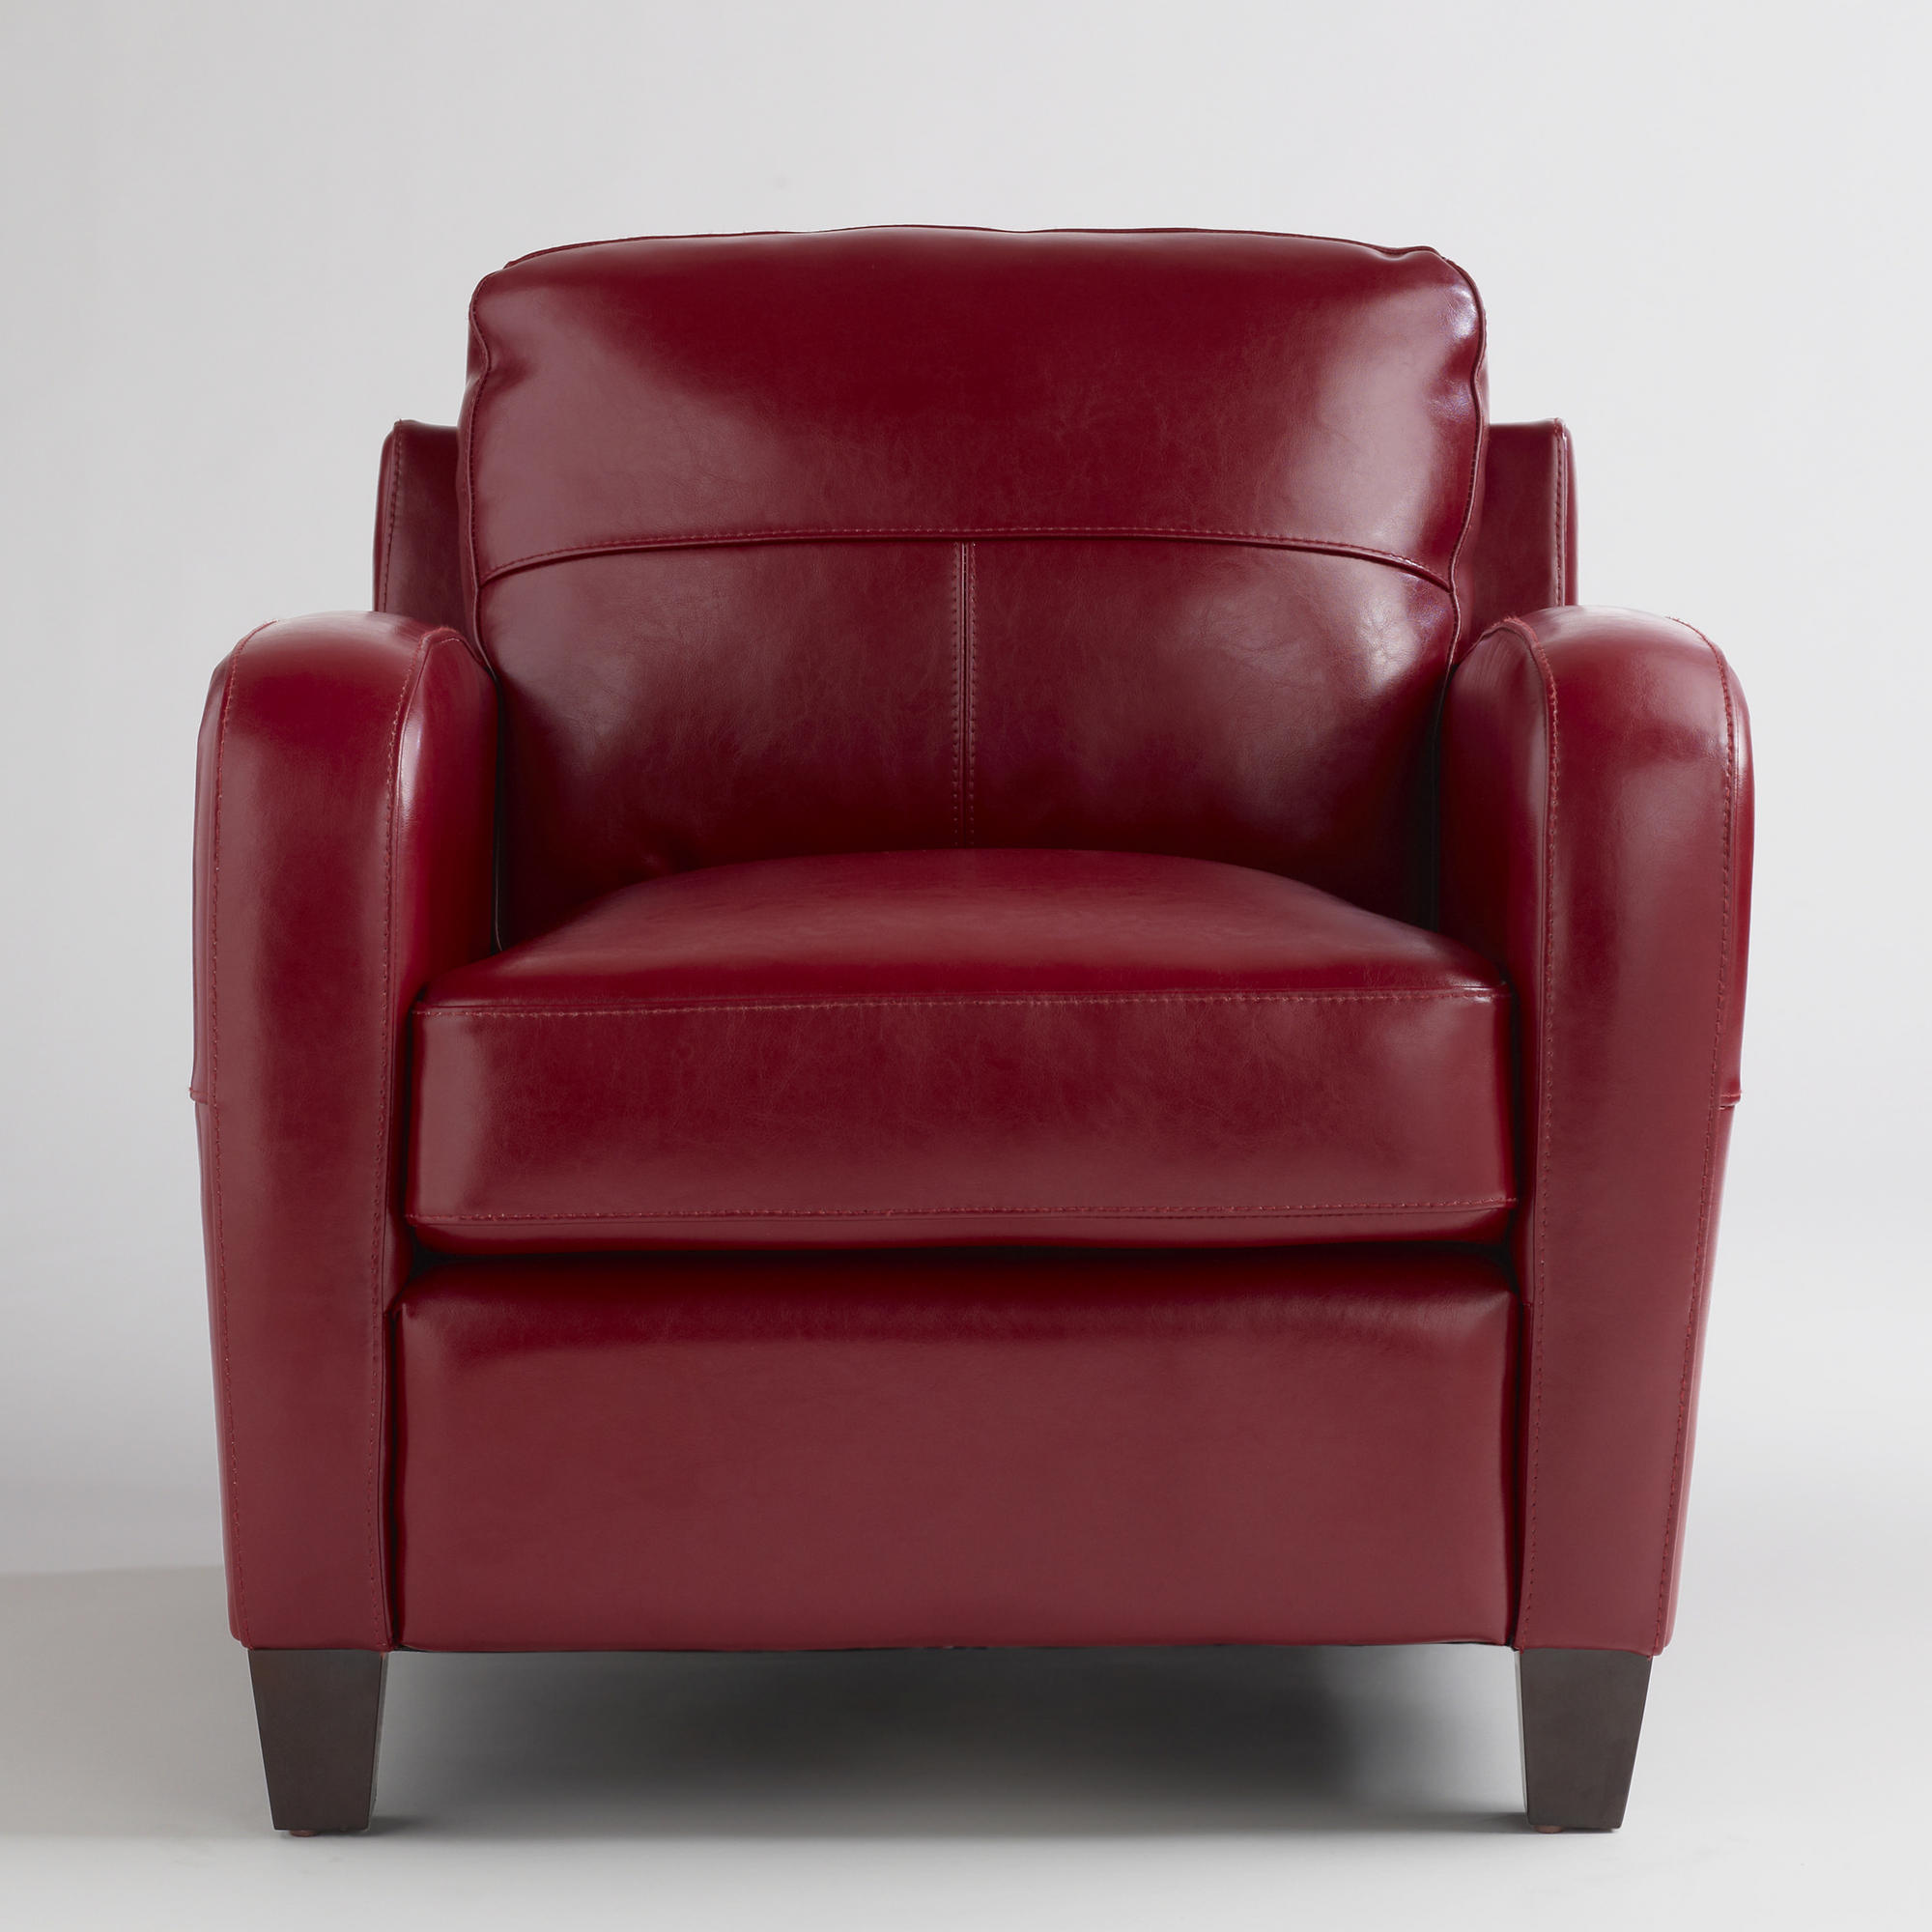 Captivating Red Leather Chair    Take 2    #2